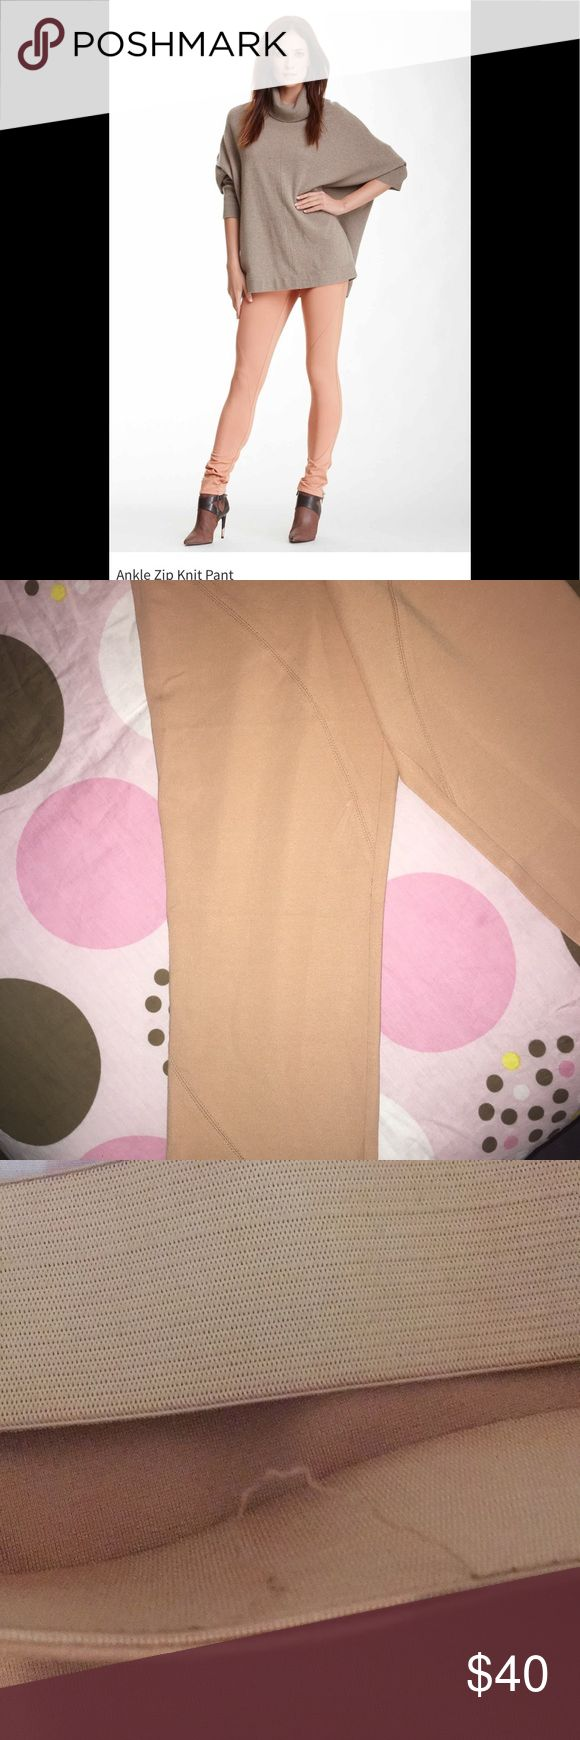 NWOT Thalian Ankle Knit pants Sz.14 These beautiful soft peach Pants are stylish and prefect for this weather. ❗️THESE PANTS ARE NEW WITHOUT TAG❗️THE THREADING AT THE WAIST IS COMING LOOSE HOWEVER CAN BE REPAIRED ❗️PURCHASED TWO YEARS AGO HOWEVER TOO BIG FOR ME. IM TALL BUT FINDING CLOTHES THAT ACCOMMODATE MY HEIGHT IS SUCH A DRAG. SO MY LOSS AND YOUR GAIN. Thalian Pants Ankle & Cropped